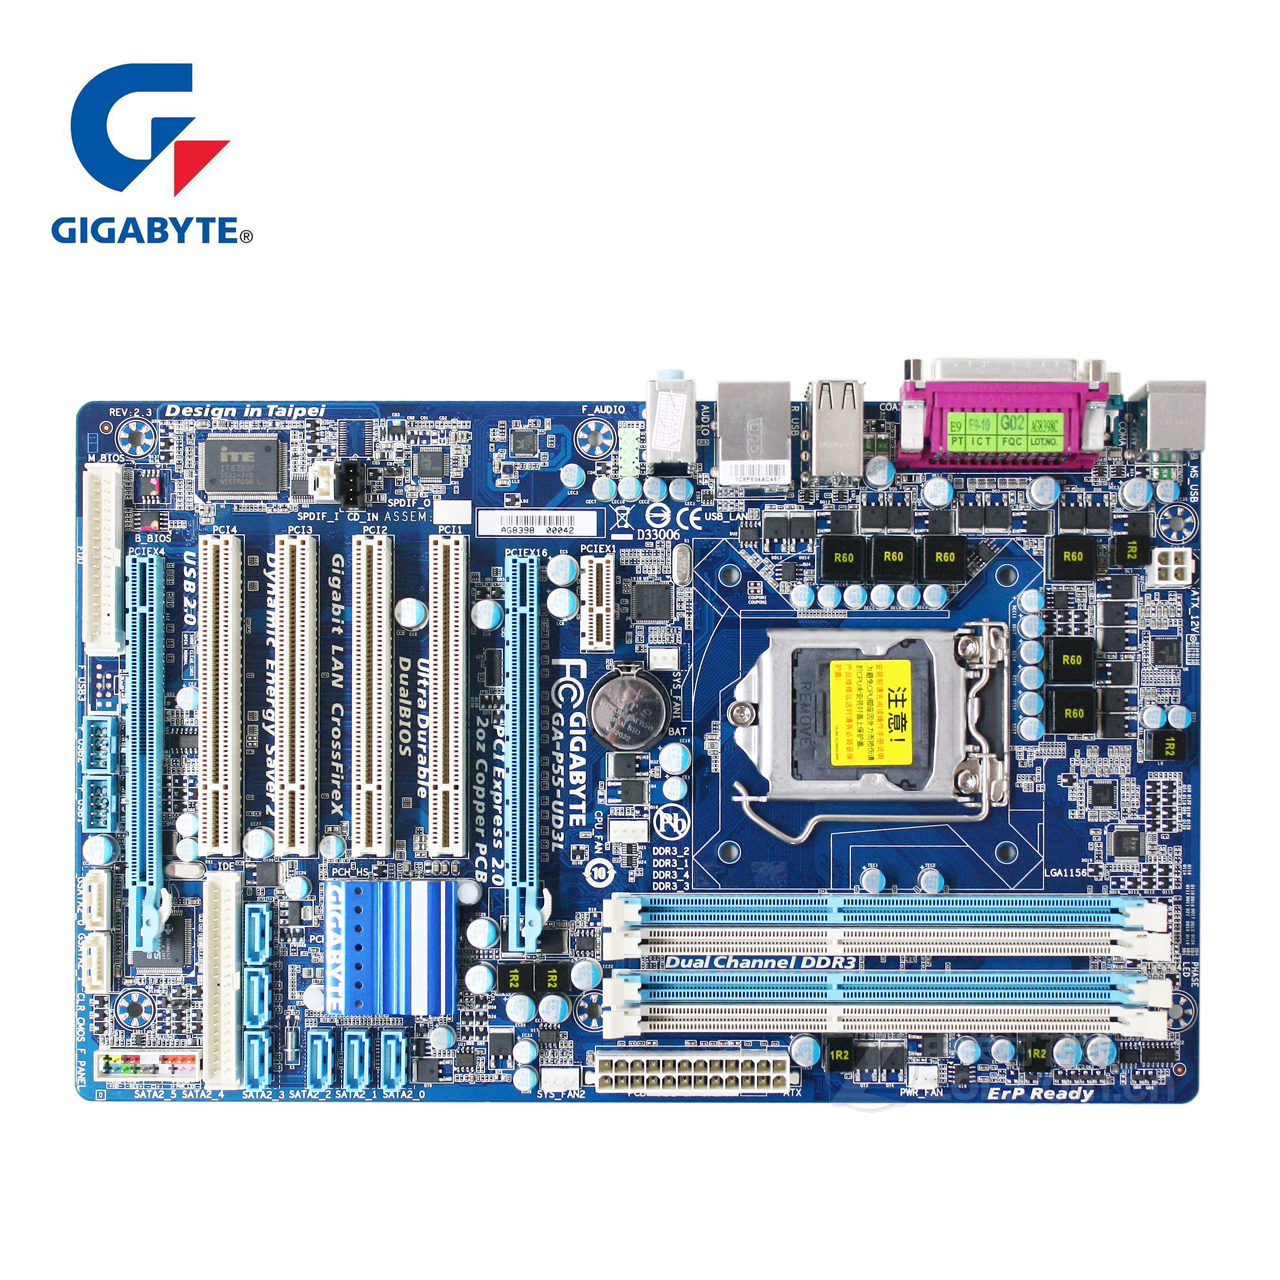 Gigabyte GA-P55-UD3L Original Motherboard LGA 1156 DDR3 Solid State Desktop Mainboard CORE i7 i5 P55 UD3L DDR3 H55 Used Boards gigabyte ga h61m s1 desktop motherboard h61 socket lga 1155 i3 i5 i7 ddr3 16g uatx uefi bios original h61m ds1 used mainboard